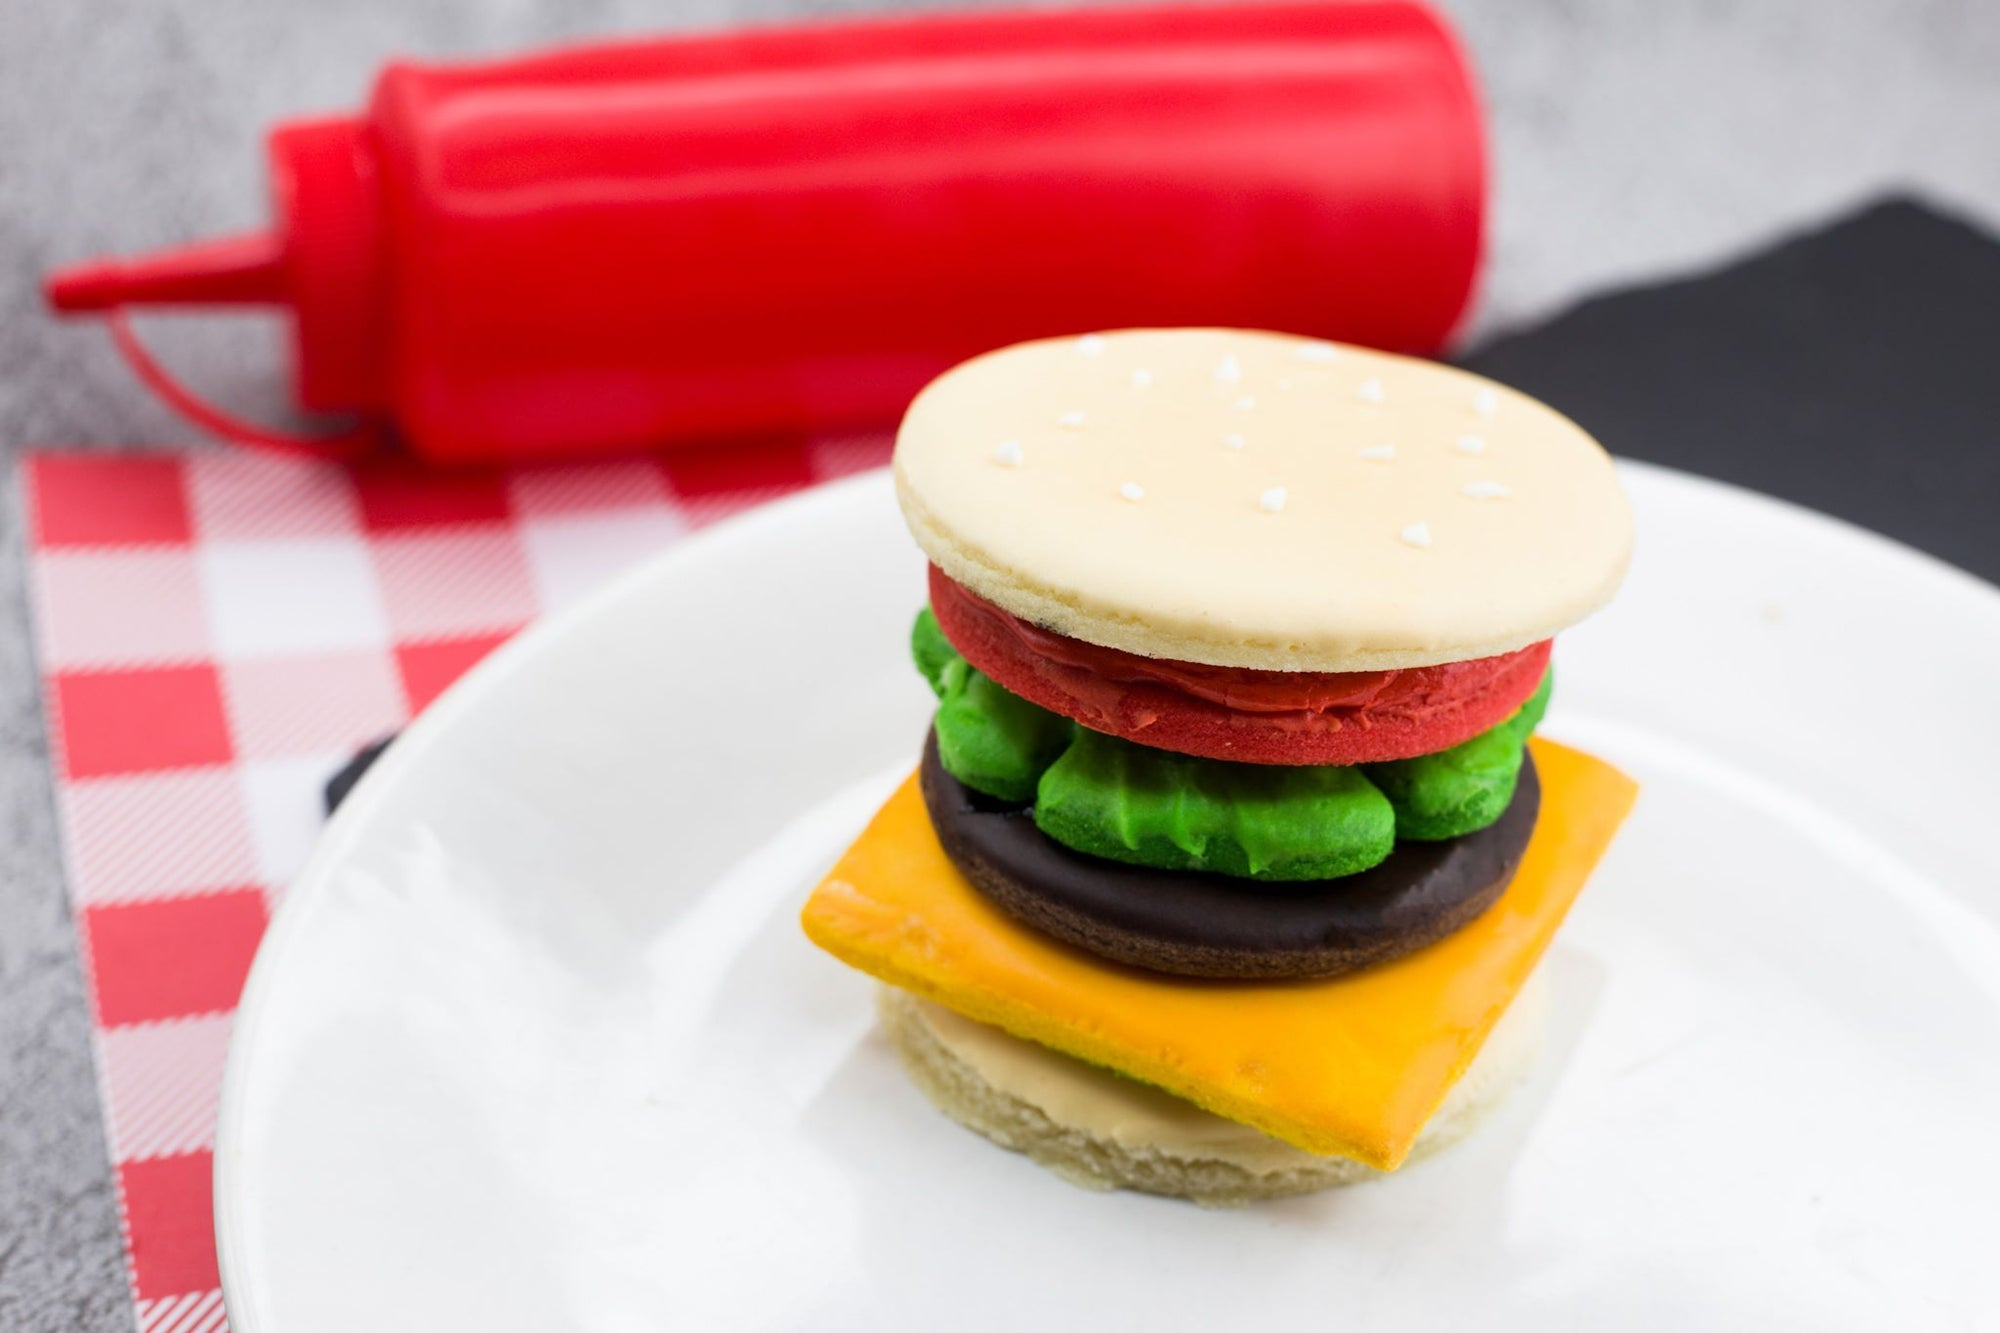 Hamburger Deconstructed Ingredients Set - Dolce3D